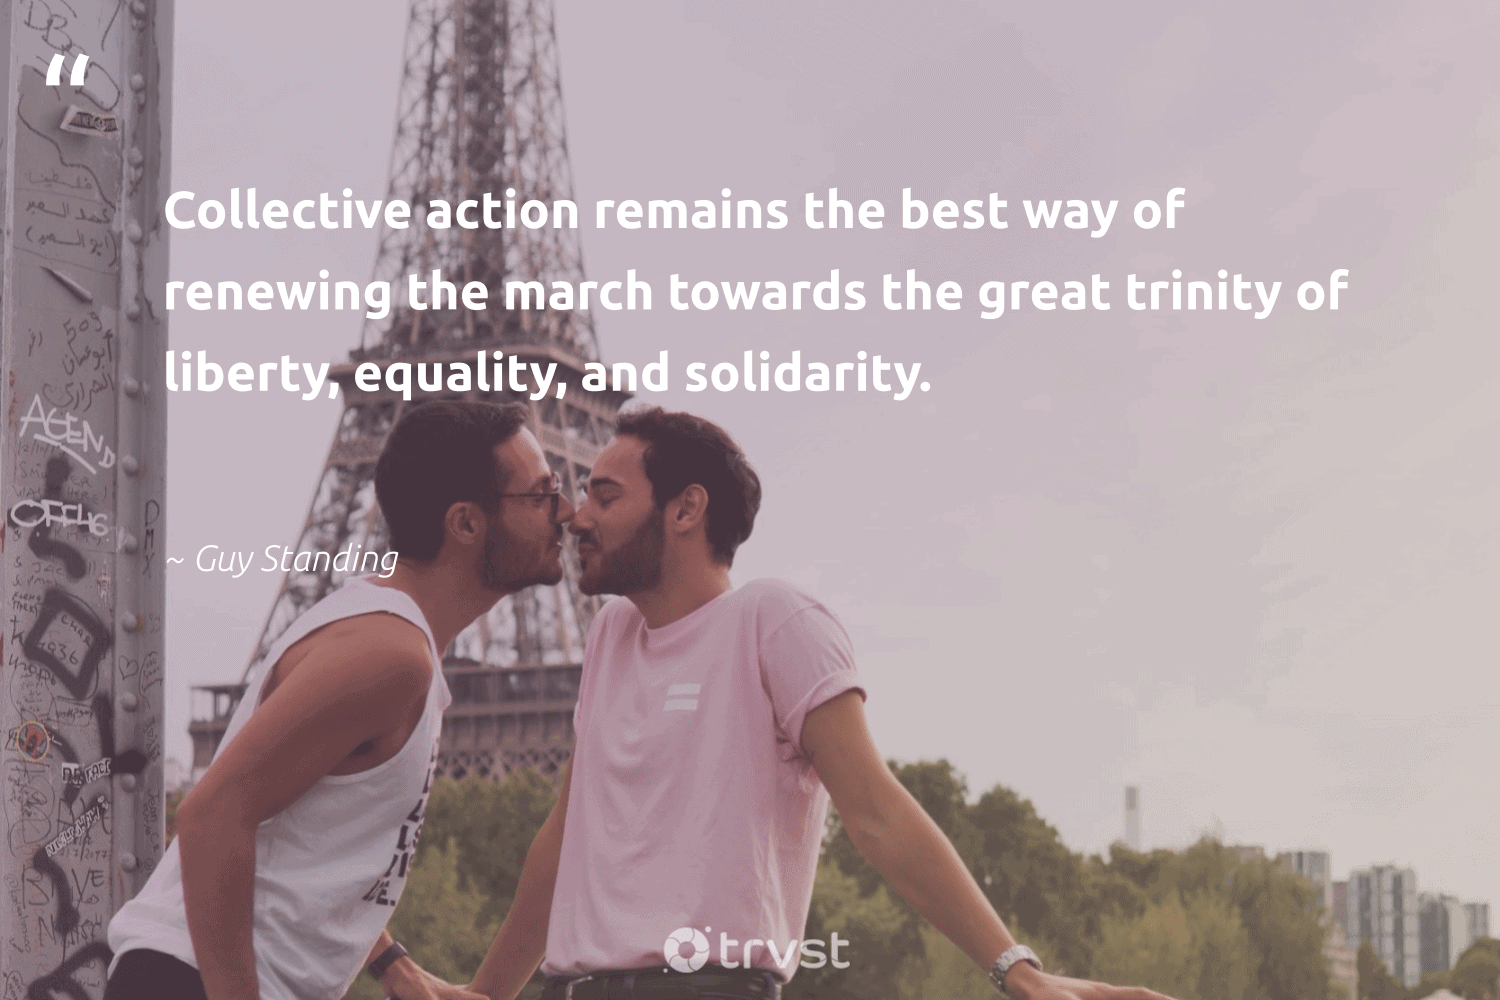 """""""Collective action remains the best way of renewing the march towards the great trinity of liberty, equality, and solidarity.""""  - Guy Standing #trvst #quotes #equality #collectiveaction #equalrights #socialgood #giveback #dogood #equalopportunity #socialchange #bethechange #dosomething"""